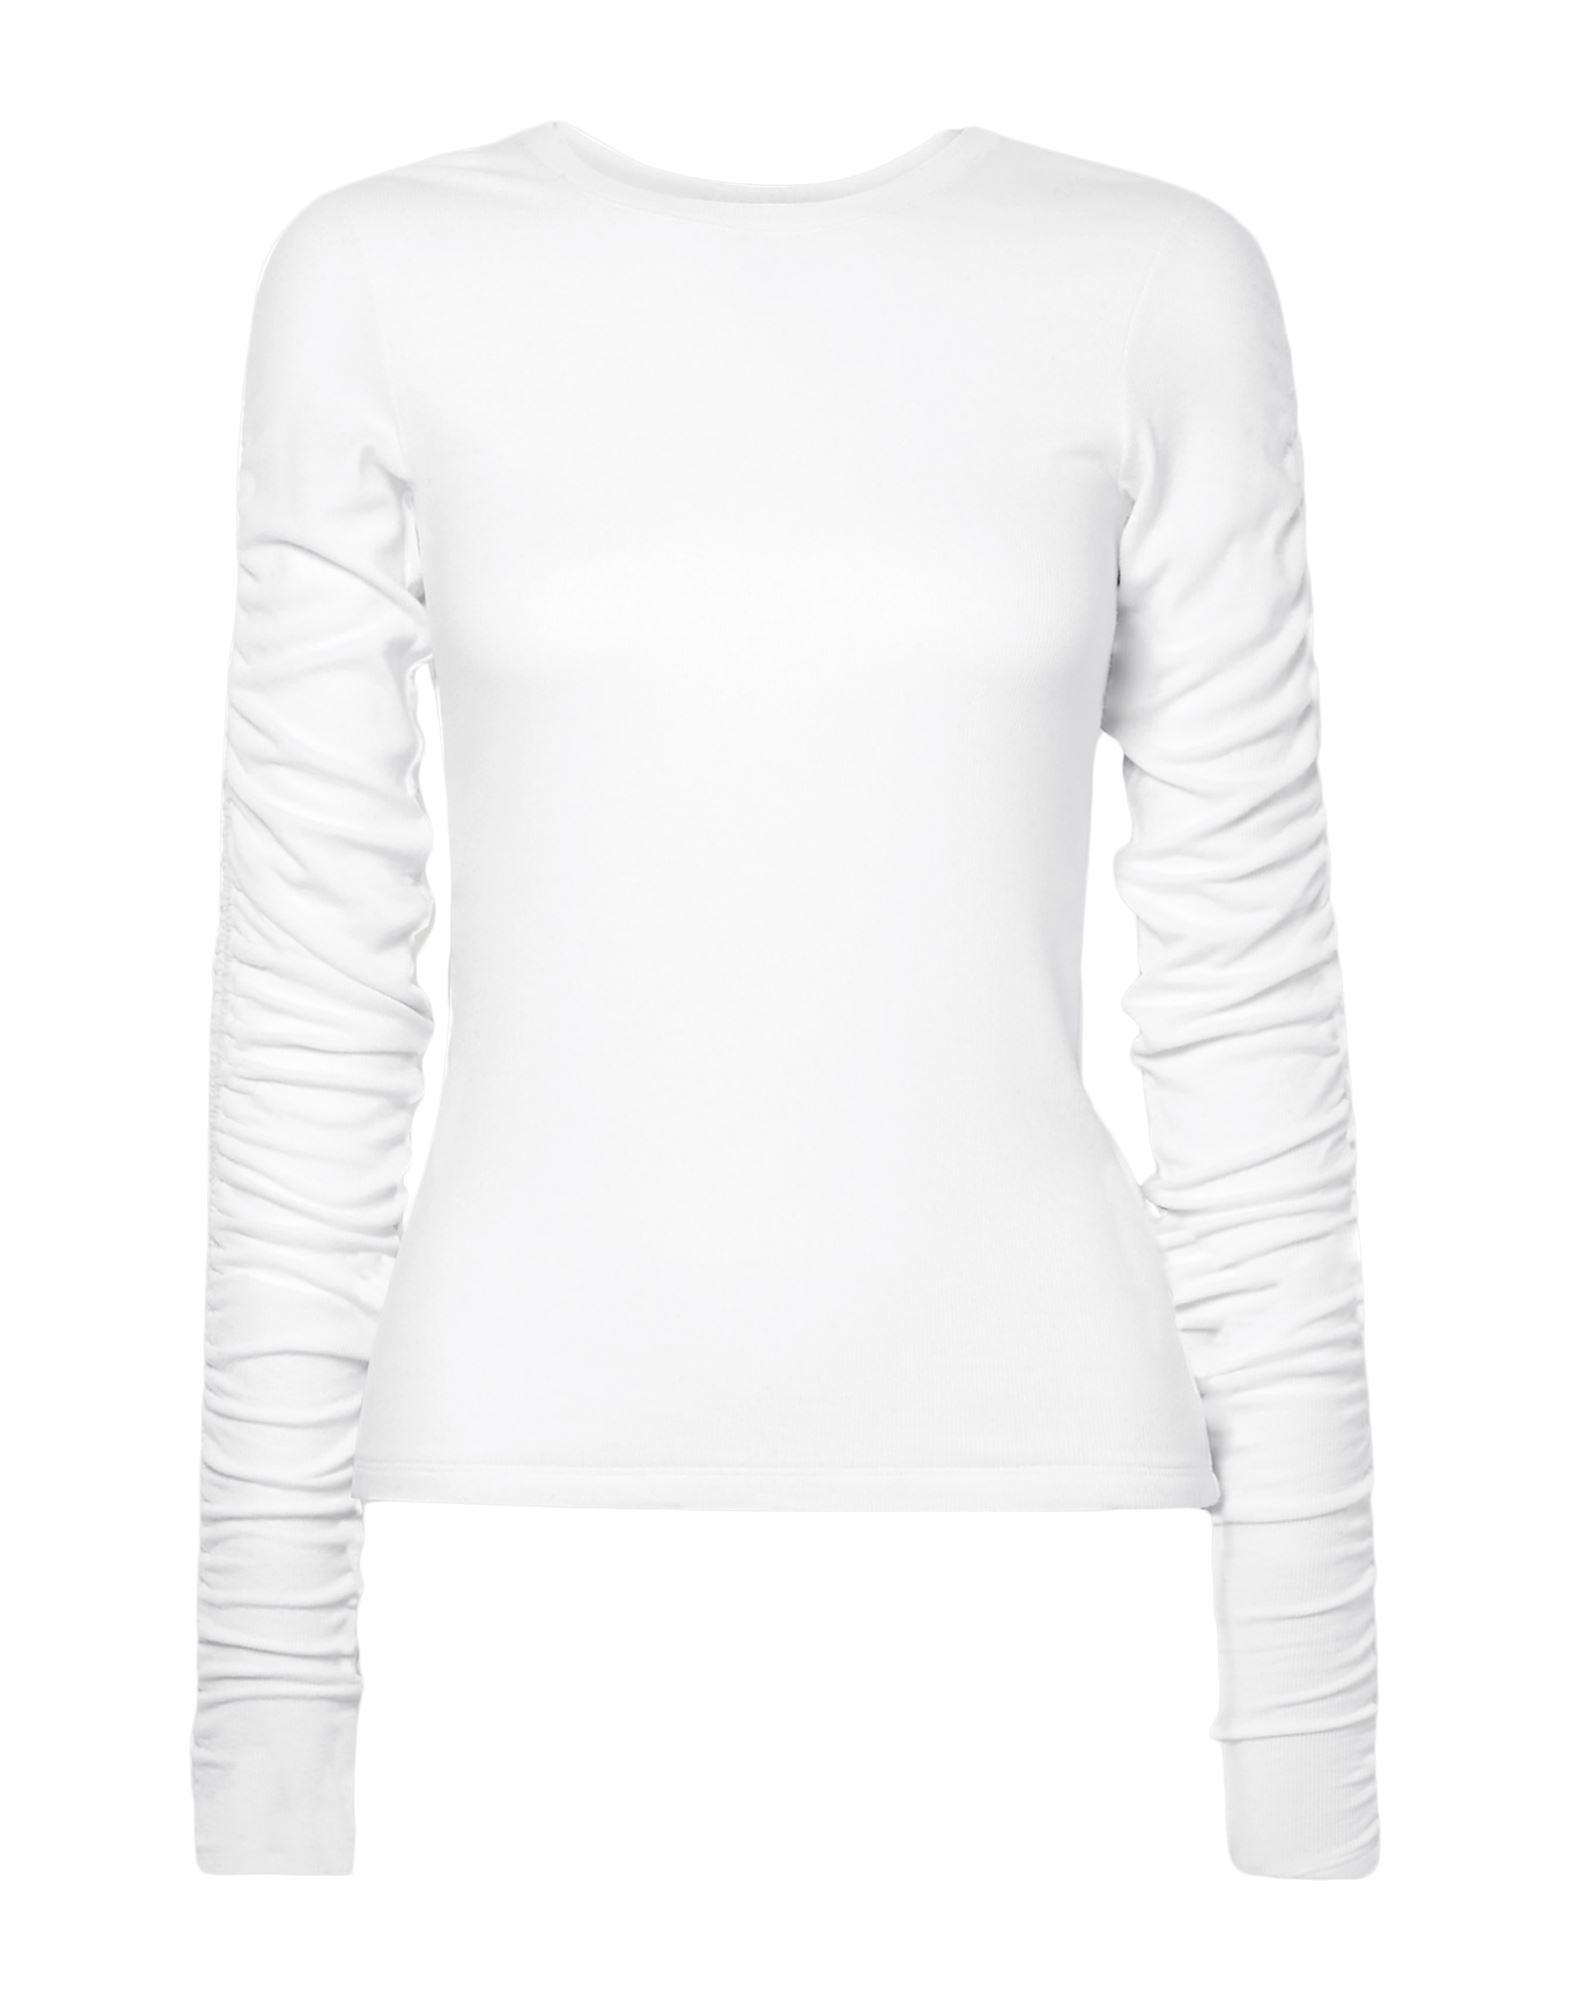 VERONICA BEARD T-shirts. jersey, frills, basic solid color, round collar, long sleeves, no pockets, stretch. 96% Modal, 4% Elastane